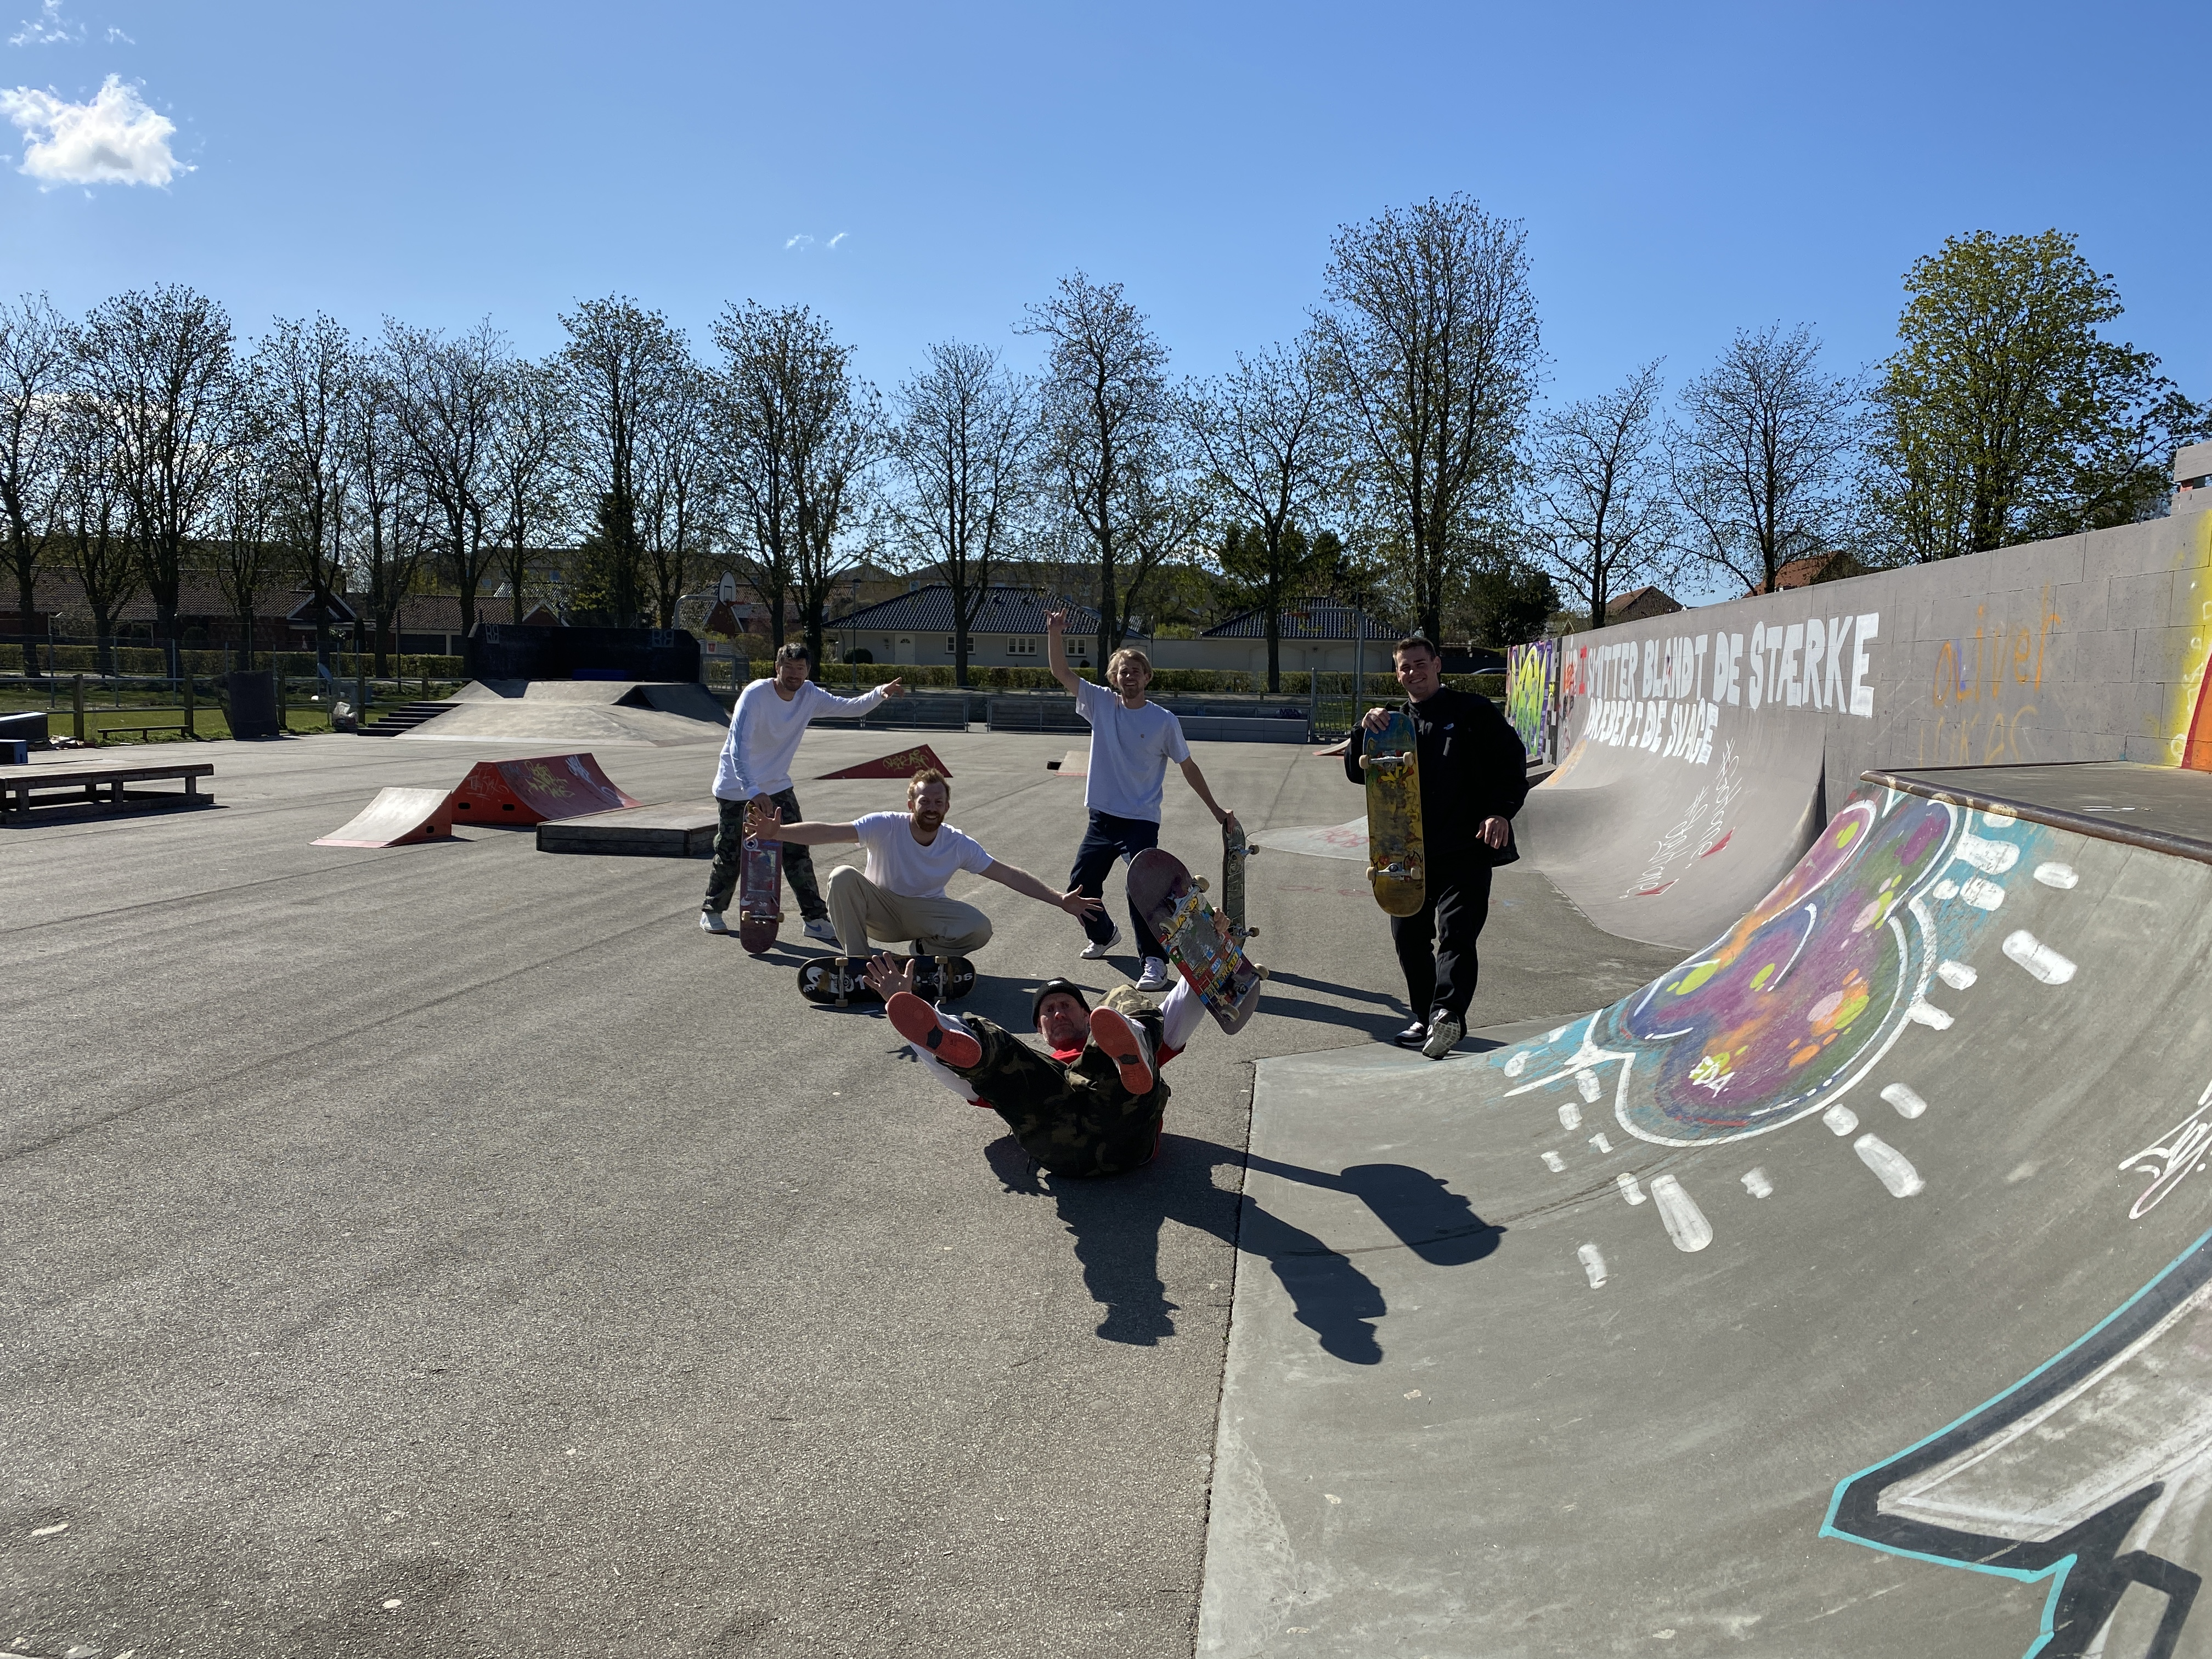 Drove to Ringsted with this team and skated the dope wall ride.